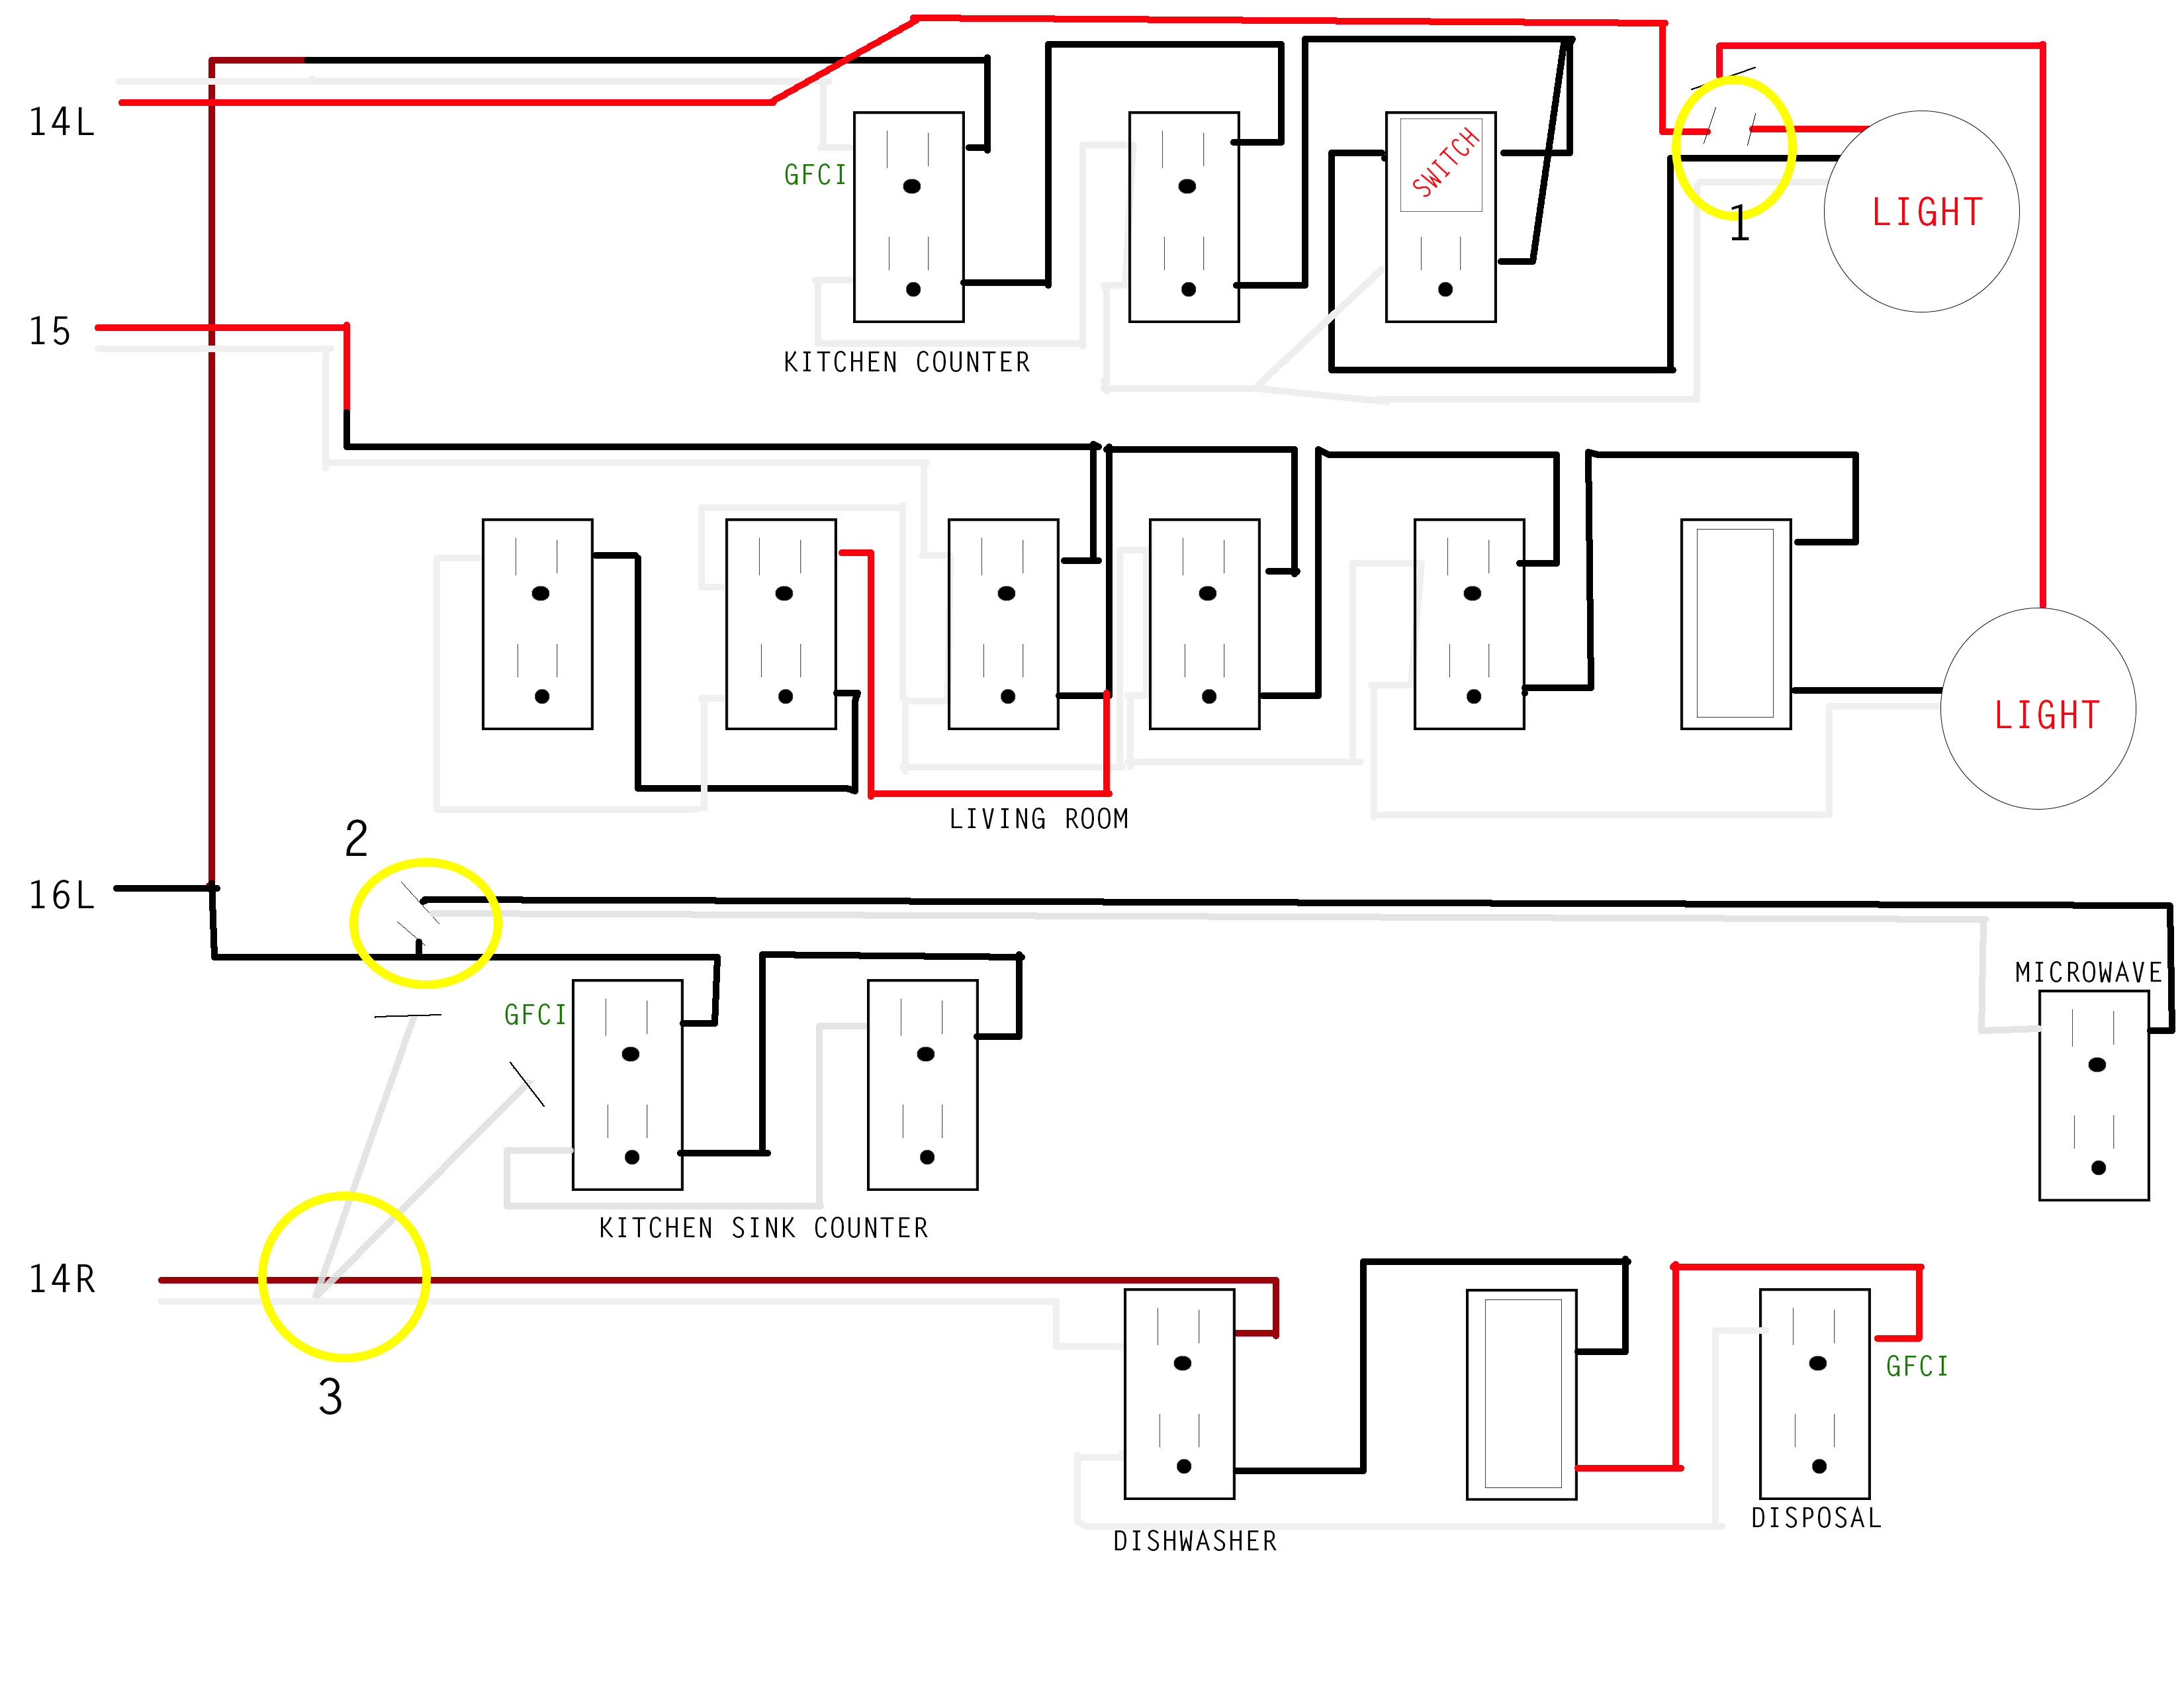 solar pv wiring diagram spinal cord and nerves kitchen issue - home improvement stack exchange